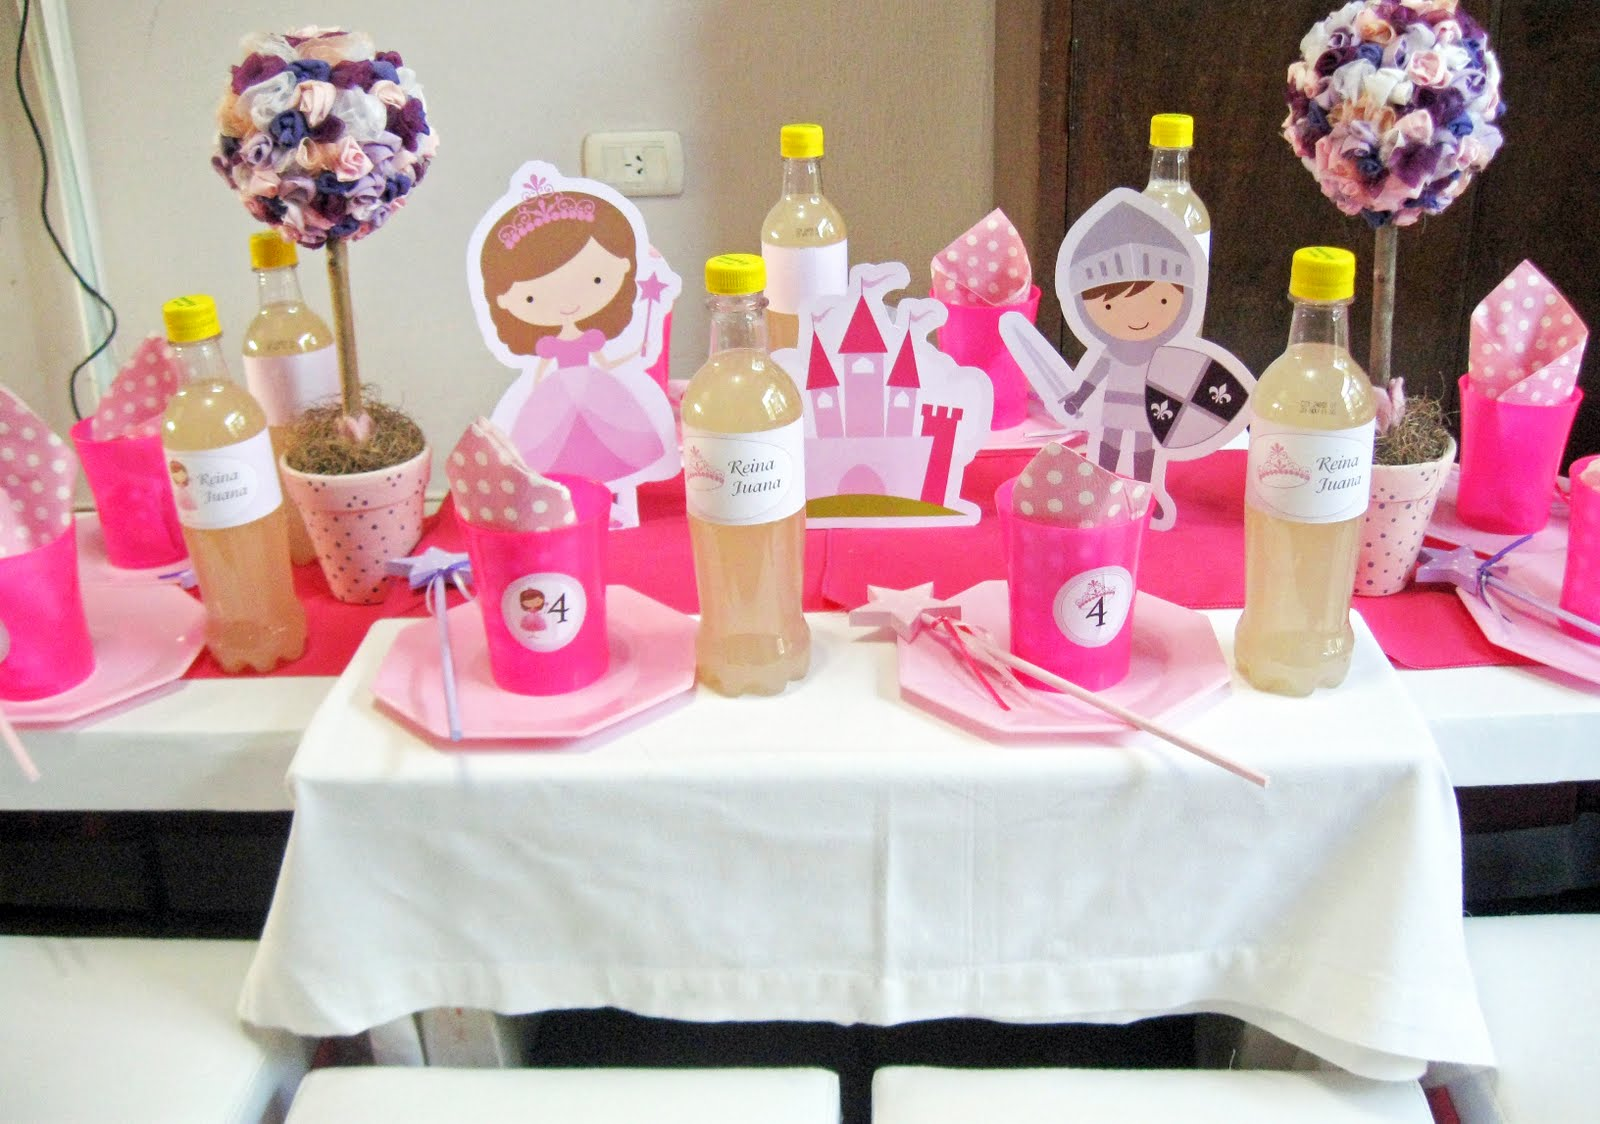 Nslittleshop Party Decorations And More Princess Party